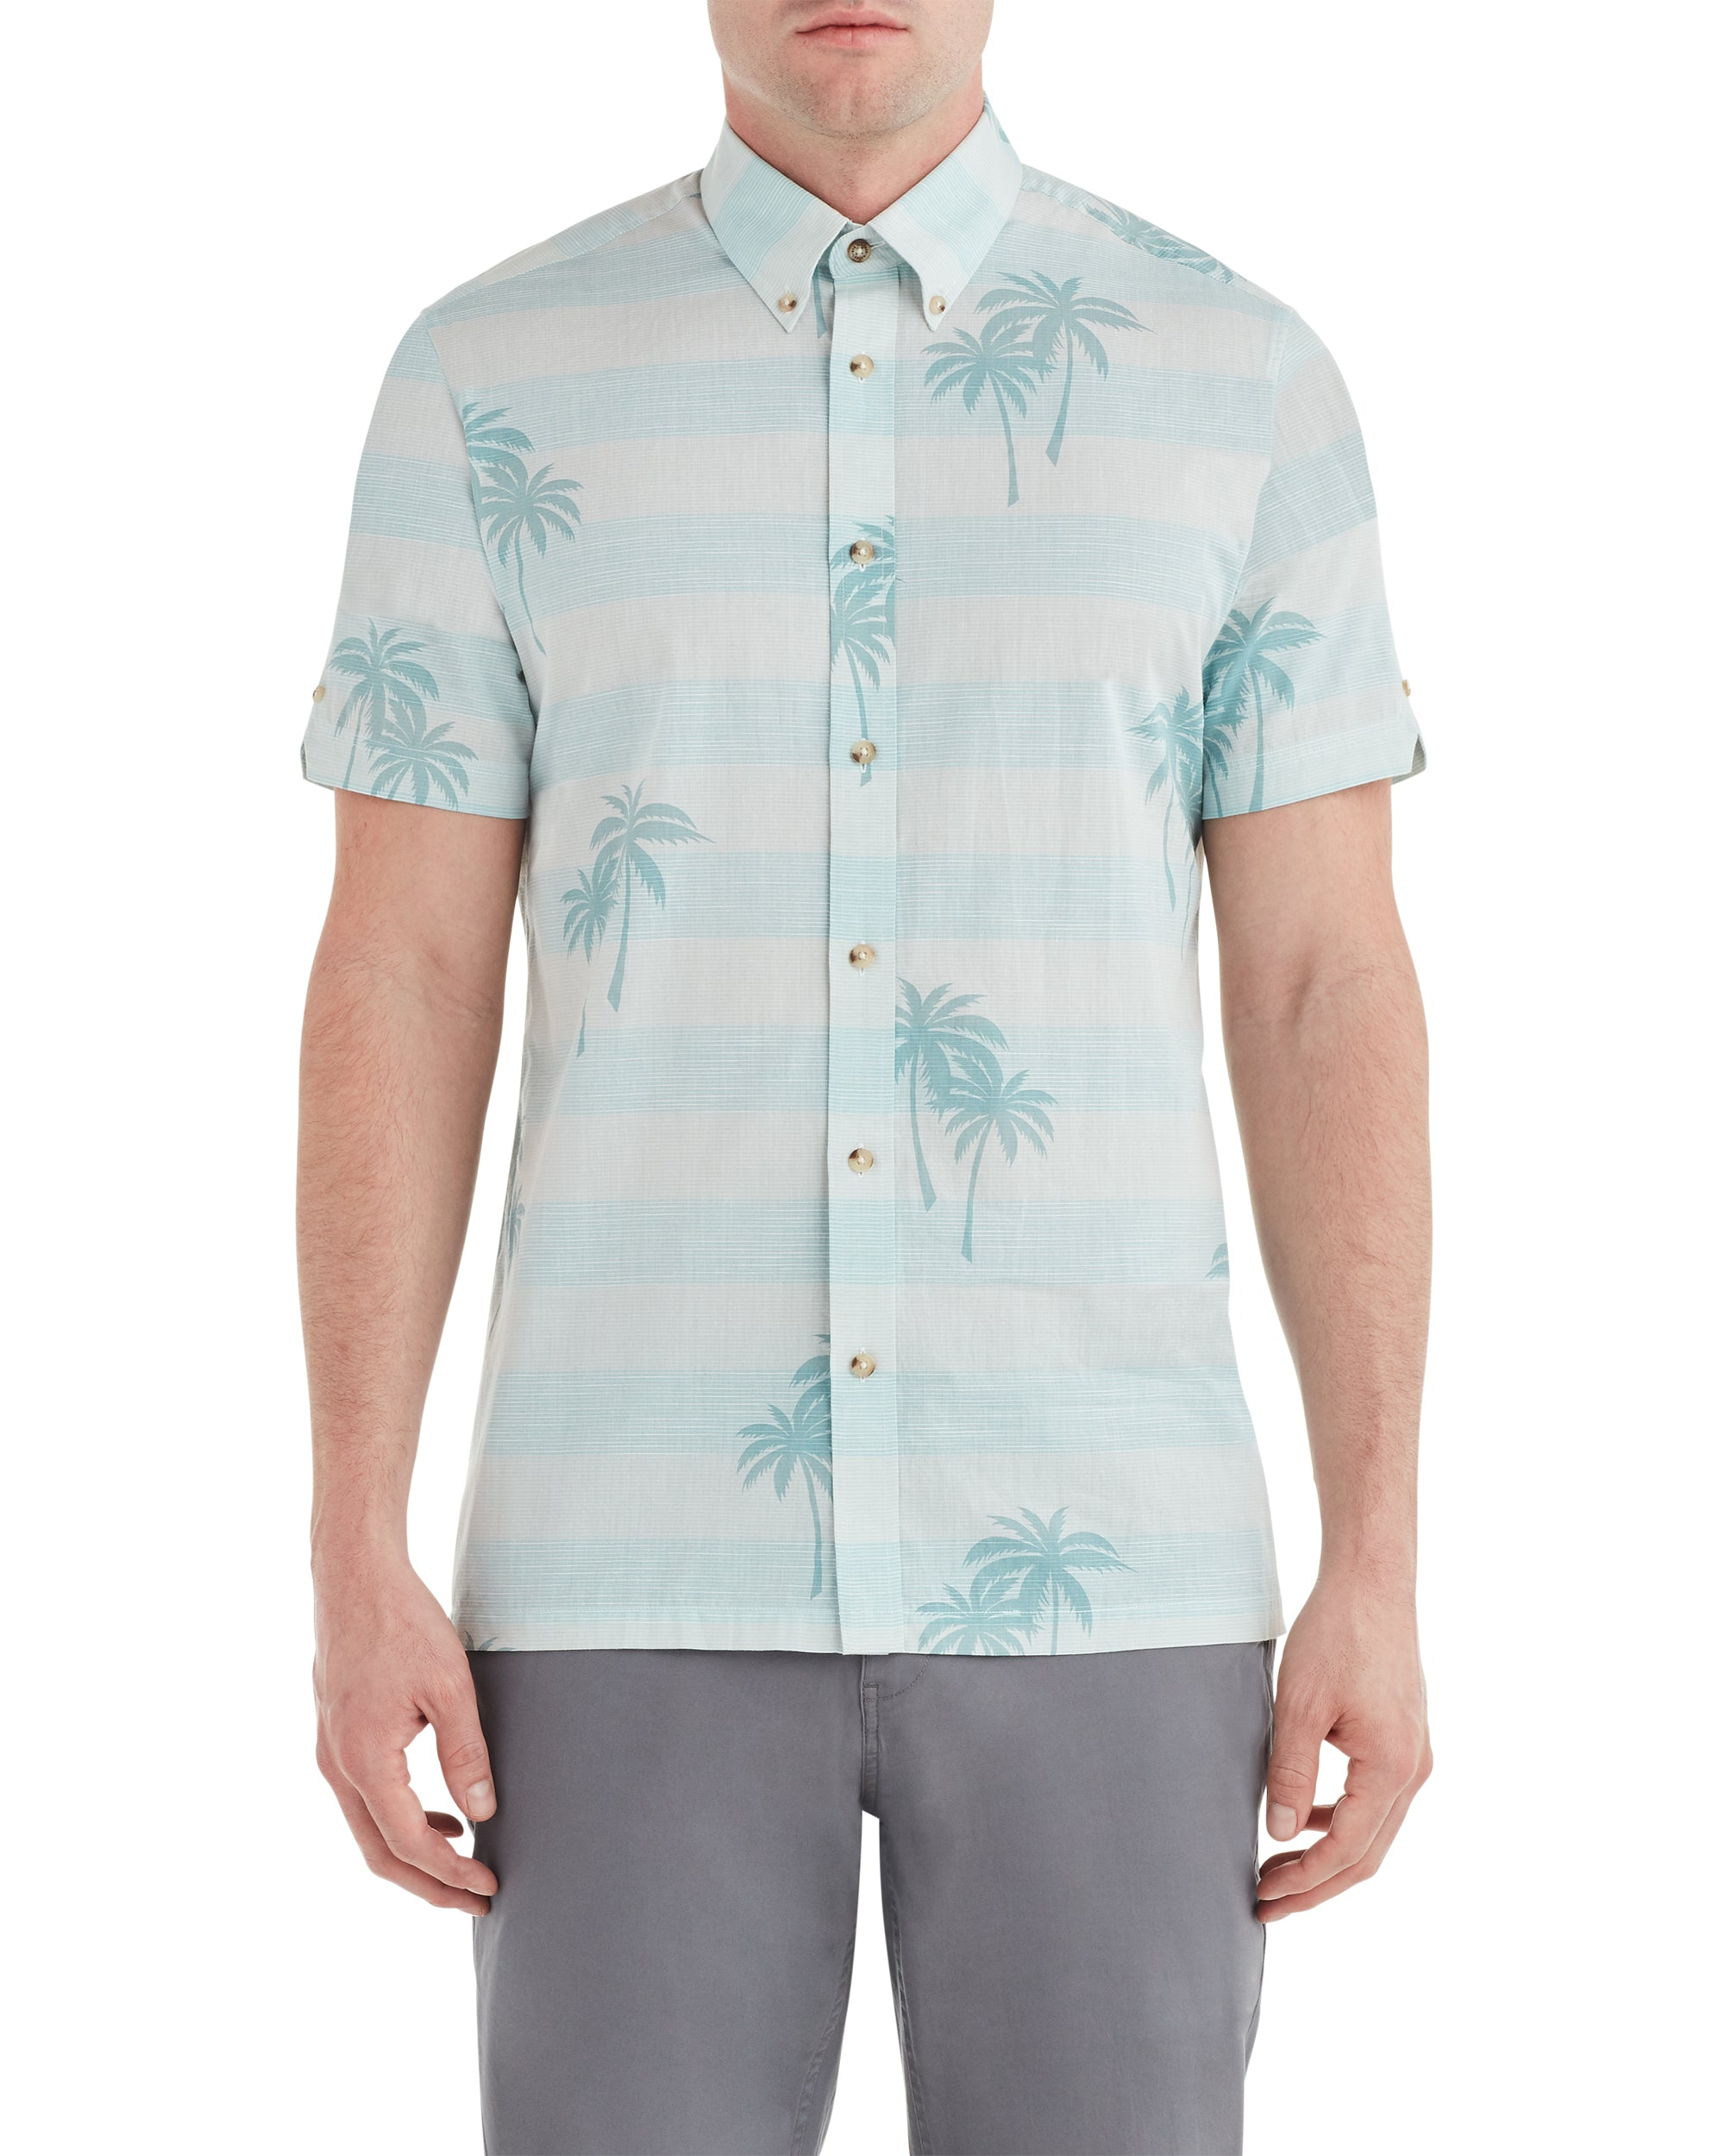 Short-Sleeve Palm Print Shirt - Sea